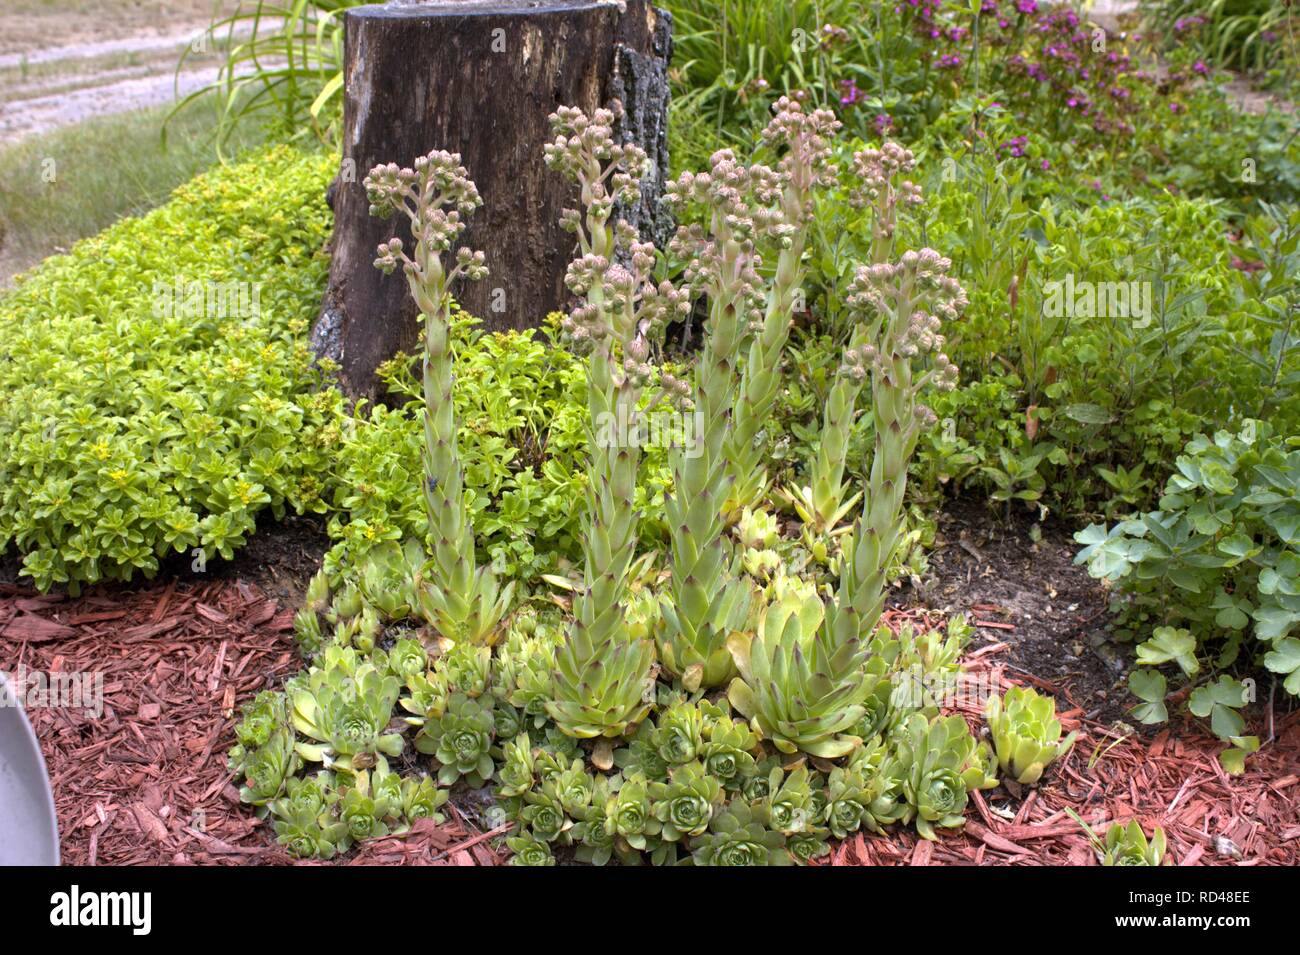 Long Blooming Stalks Of Hens And Chicks - Stock Image